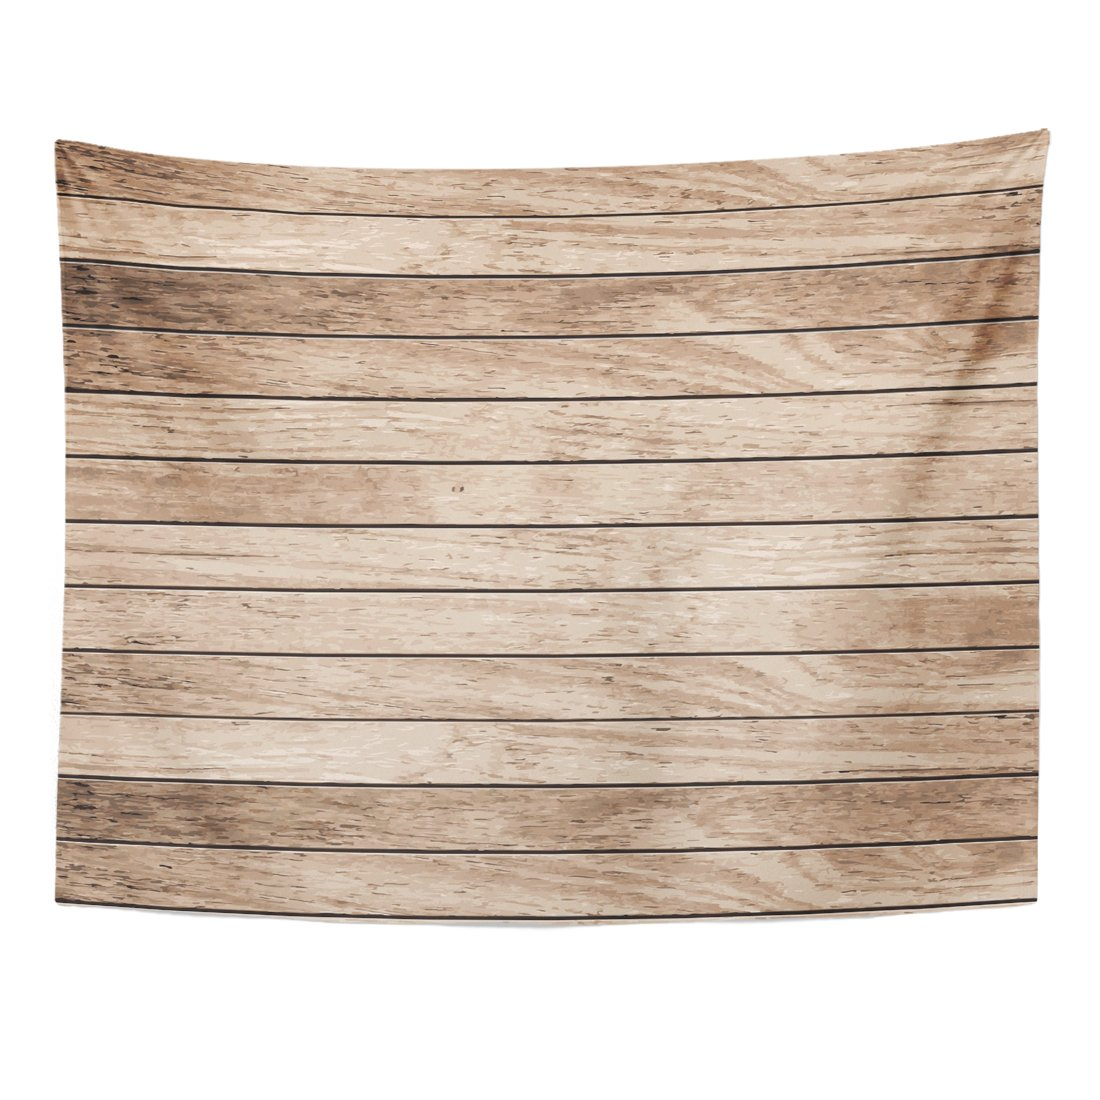 Emvency Tapestry Brown Wooden Wood Plank Floor Table Home Decor Wall Hanging for Living Room Bedroom Dorm 60x80 inches